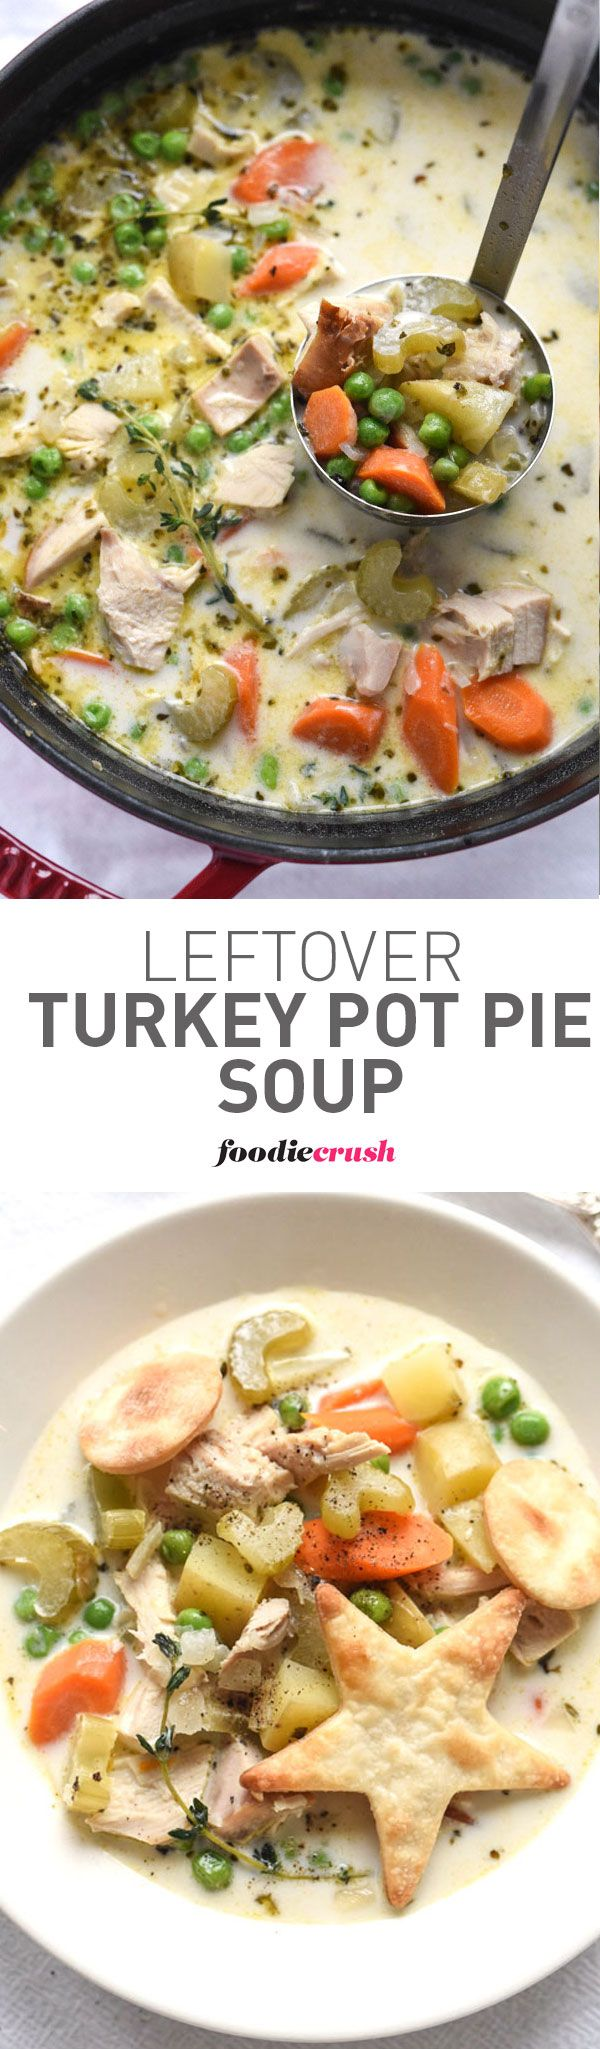 I've turned my favorite way to use up leftover turkey from my favorite baked pot pie to a totally comforting slurpable soup | foodiecrush.com